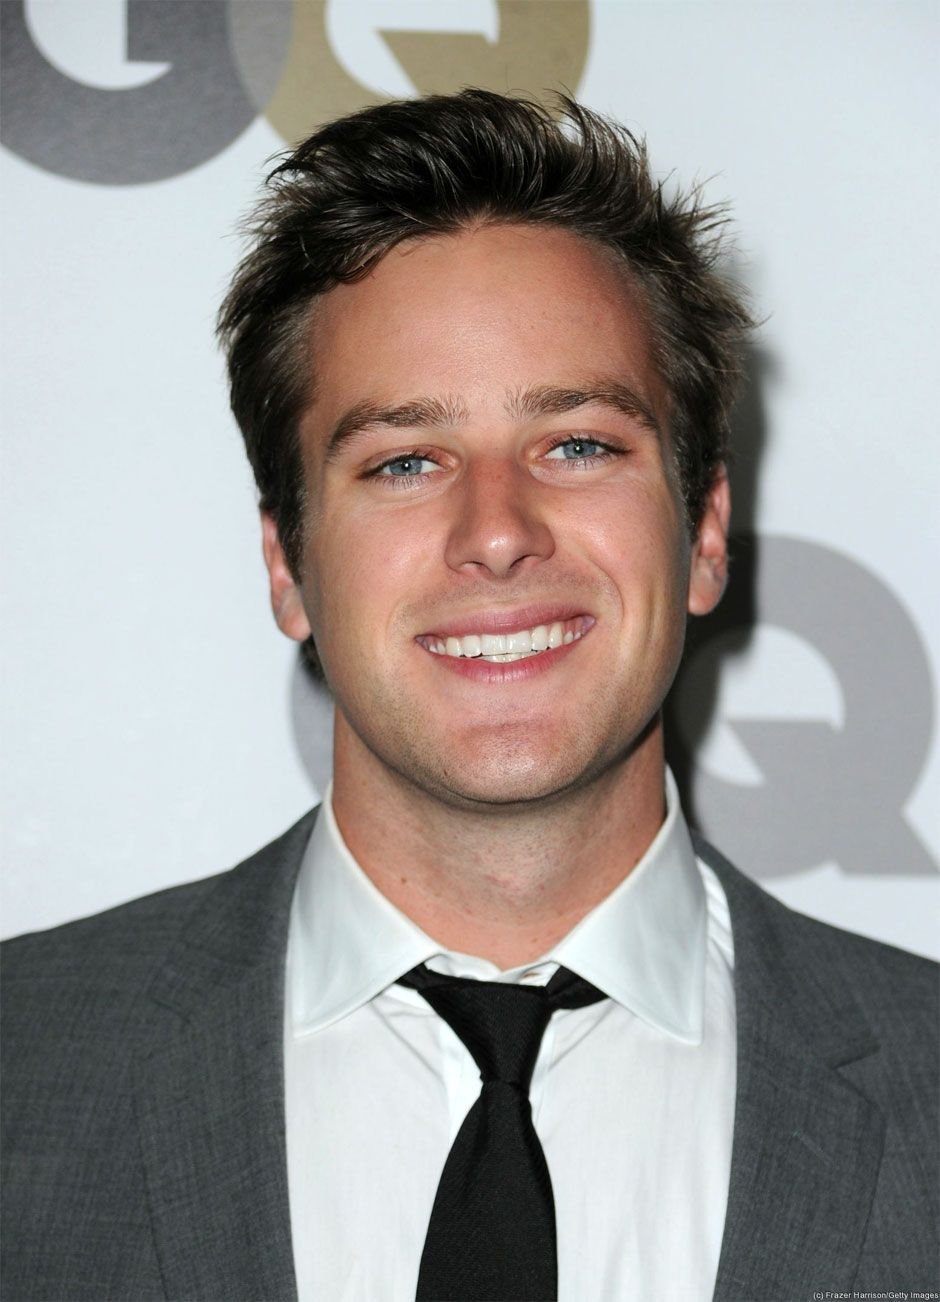 armie hammer tumblrarmie hammer gif, armie hammer tumblr, armie hammer mine, armie hammer height, armie hammer wife, armie hammer timothee chalamet, armie hammer uncle, armie hammer batman, armie hammer twitter, armie hammer and elizabeth chambers, armie hammer henry cavill, armie hammer gif hunt, armie hammer vk, armie hammer фильмы, armie hammer green lantern, armie hammer social network, armie hammer imdb, armie hammer gossip girl, armie hammer 2017, armie hammer кинопоиск